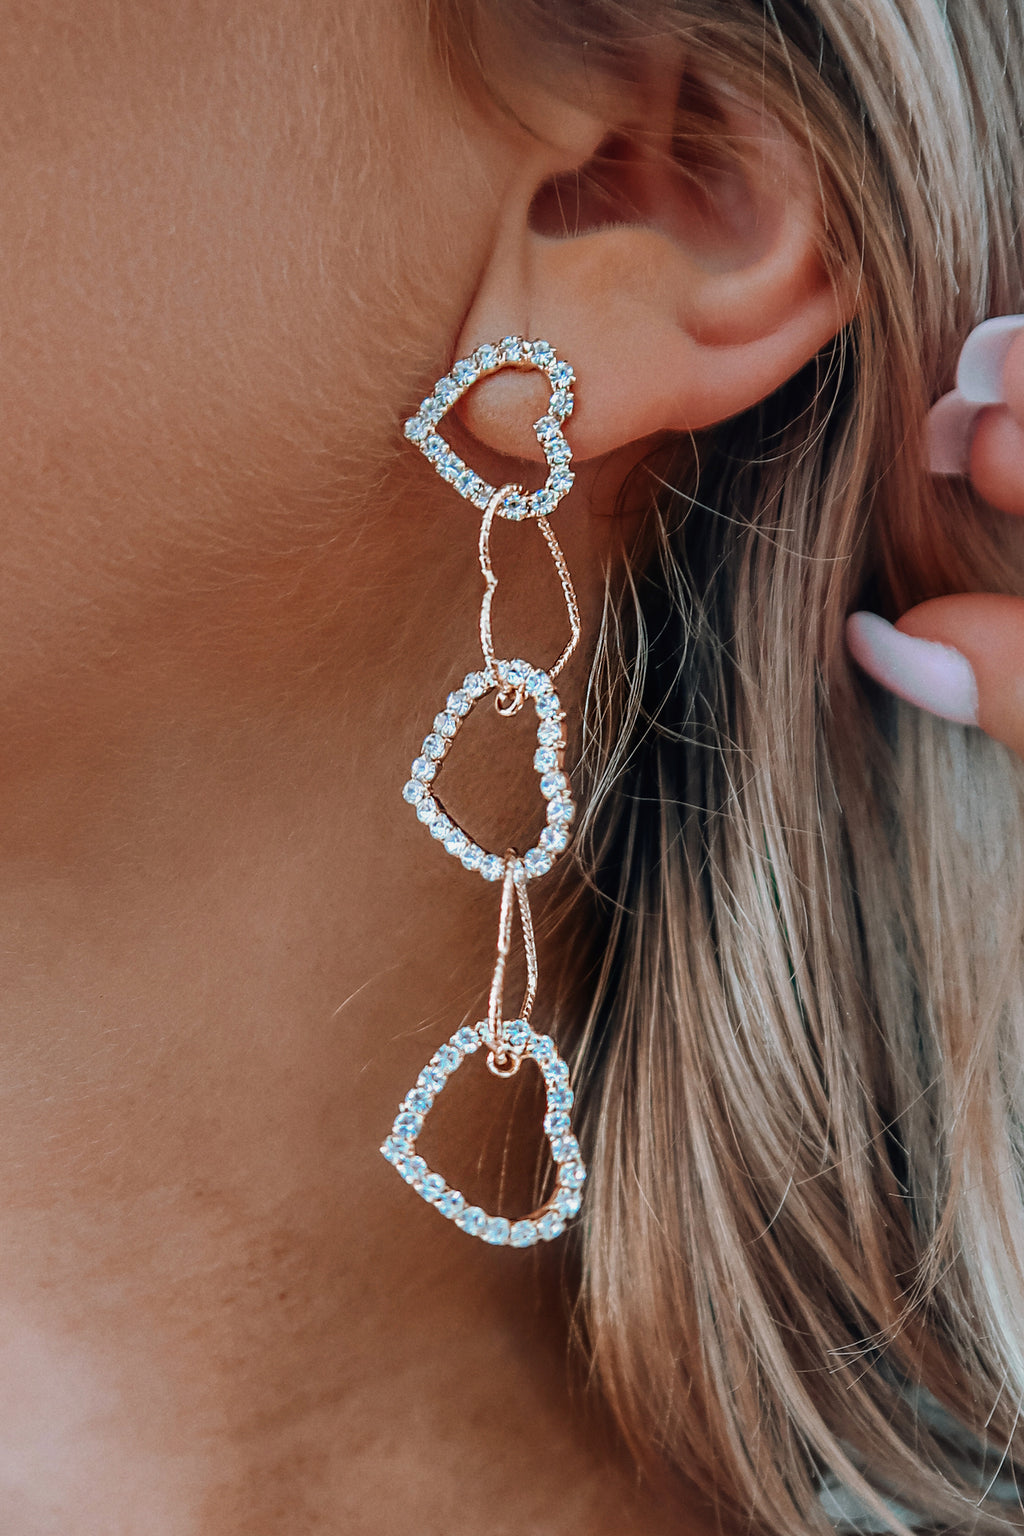 Link Our Hearts Earrings: Gold